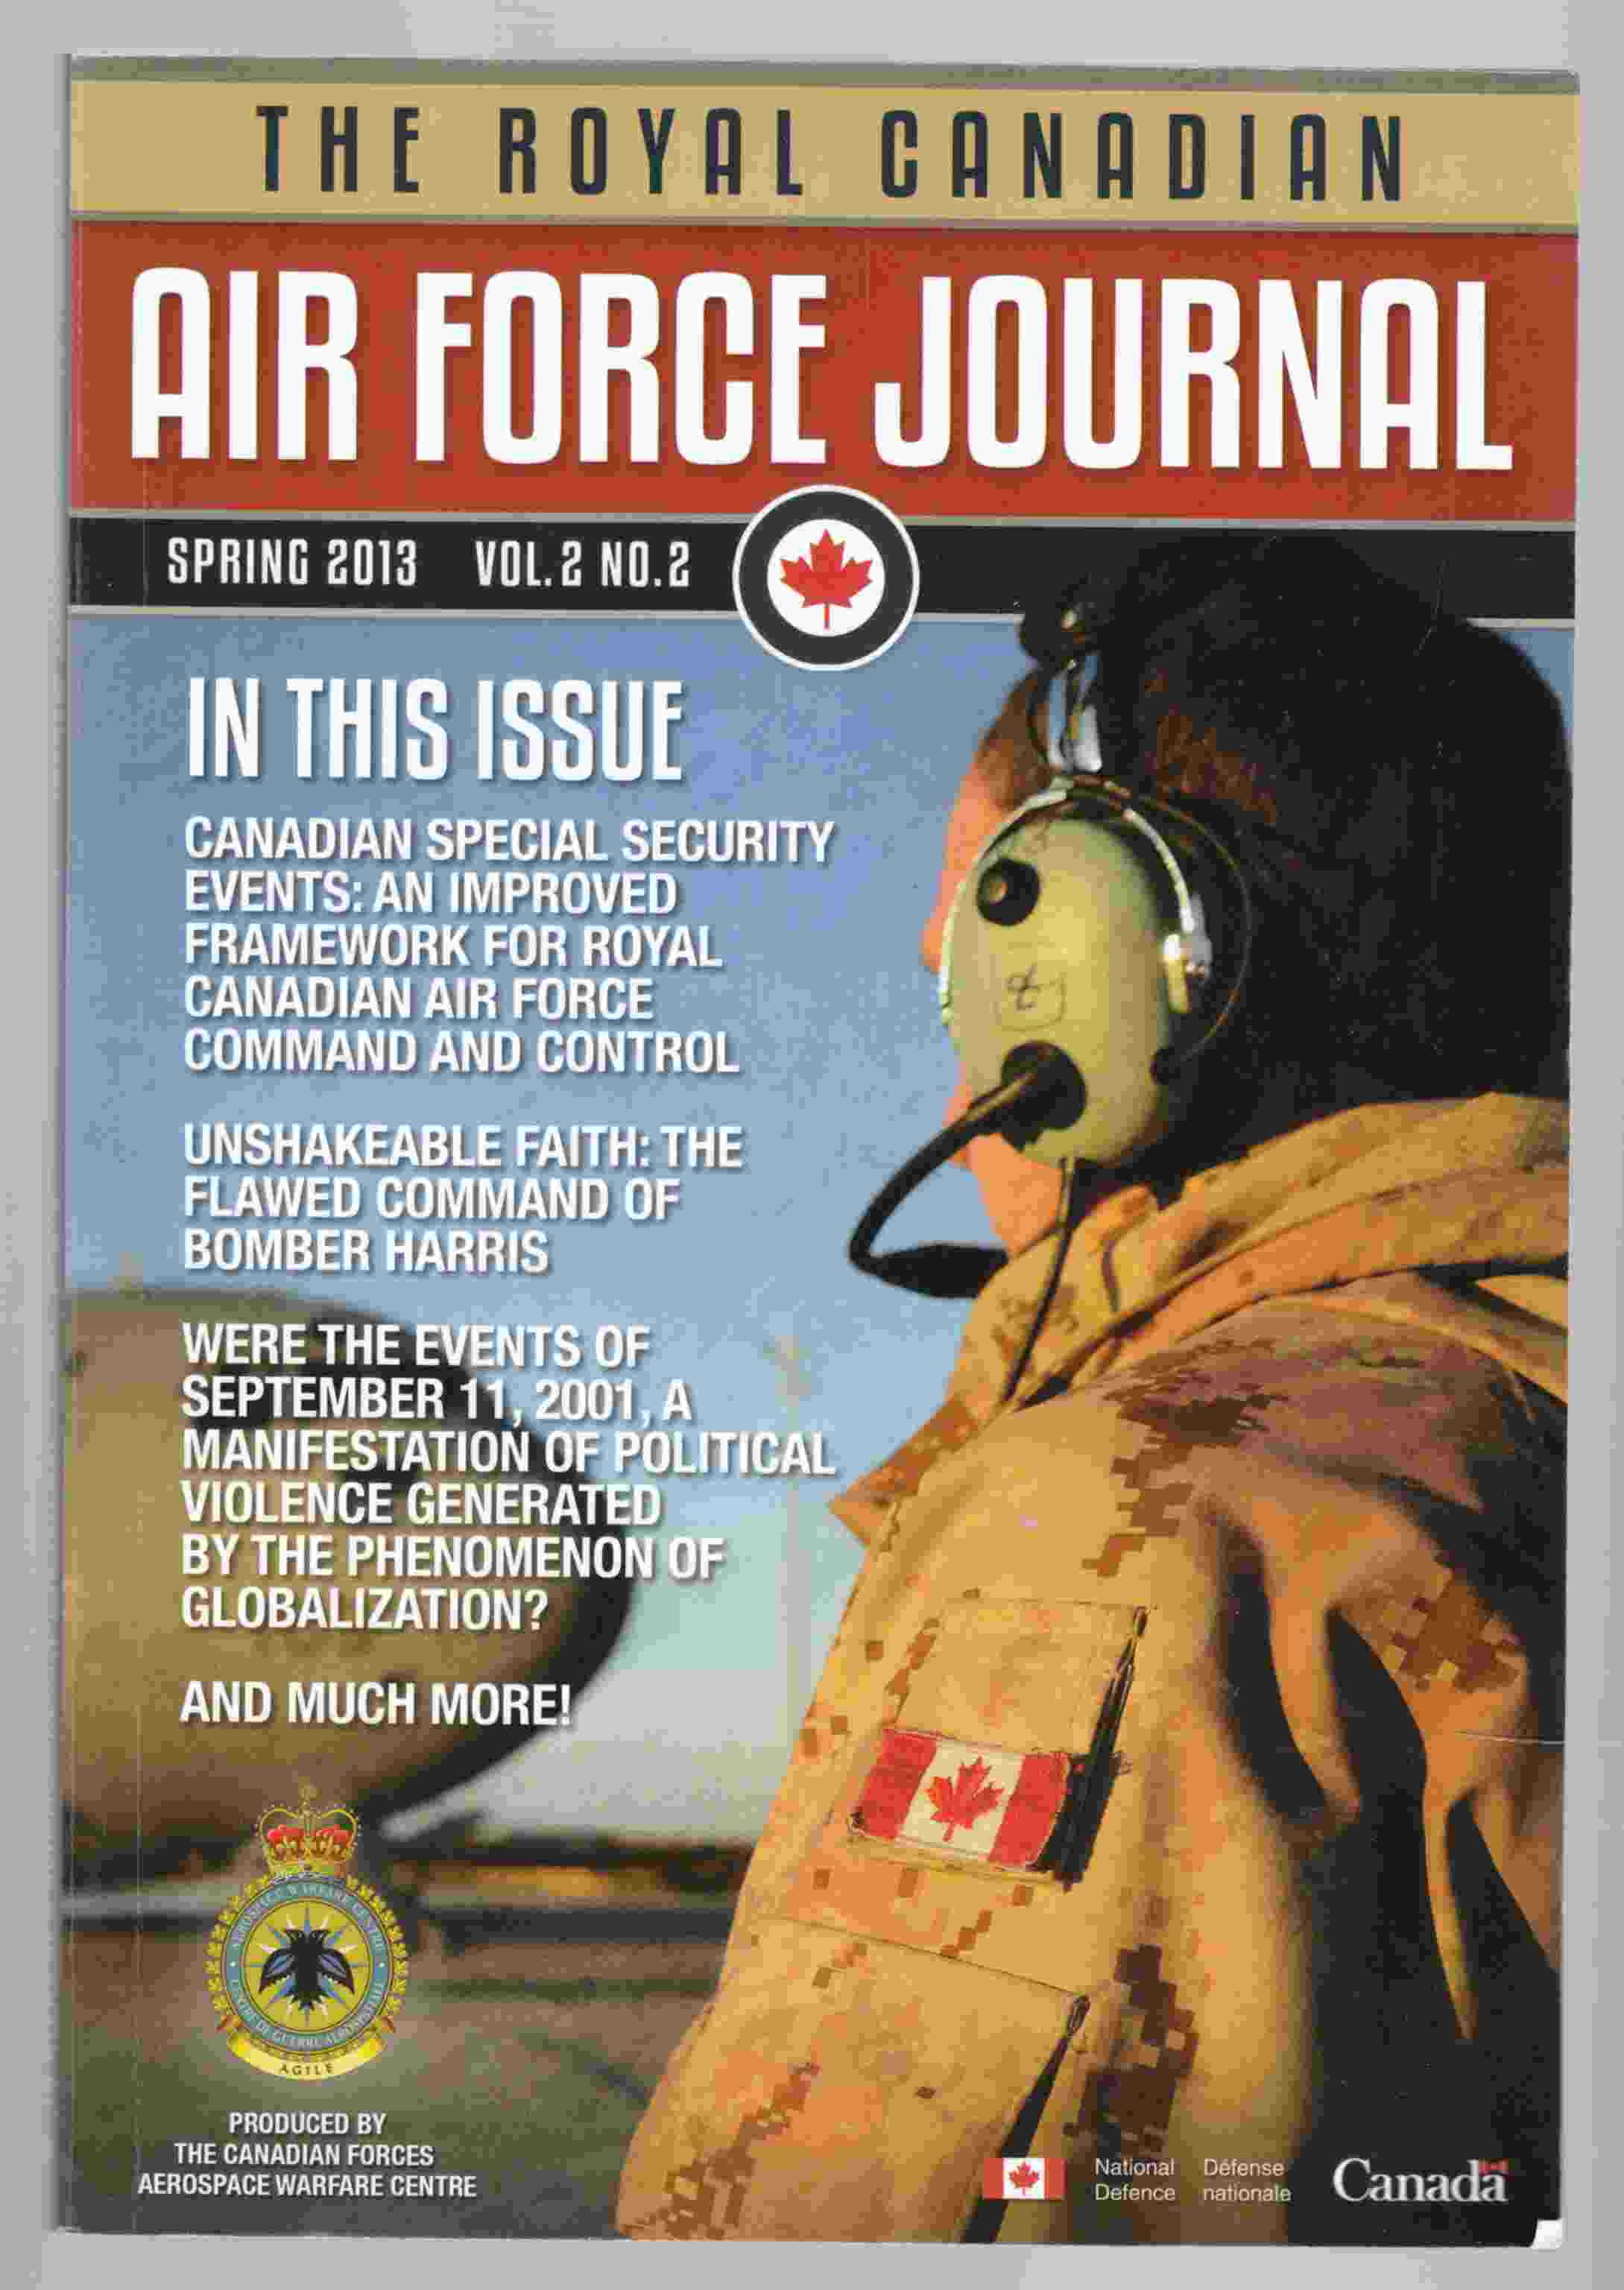 Image for The Royal Canadian Air Force Journal Spring 2013 Vol 3. No. 2 / La Revue De L'Aviation Royale Canadienne Printemps 2013 Vol 2. No. 2